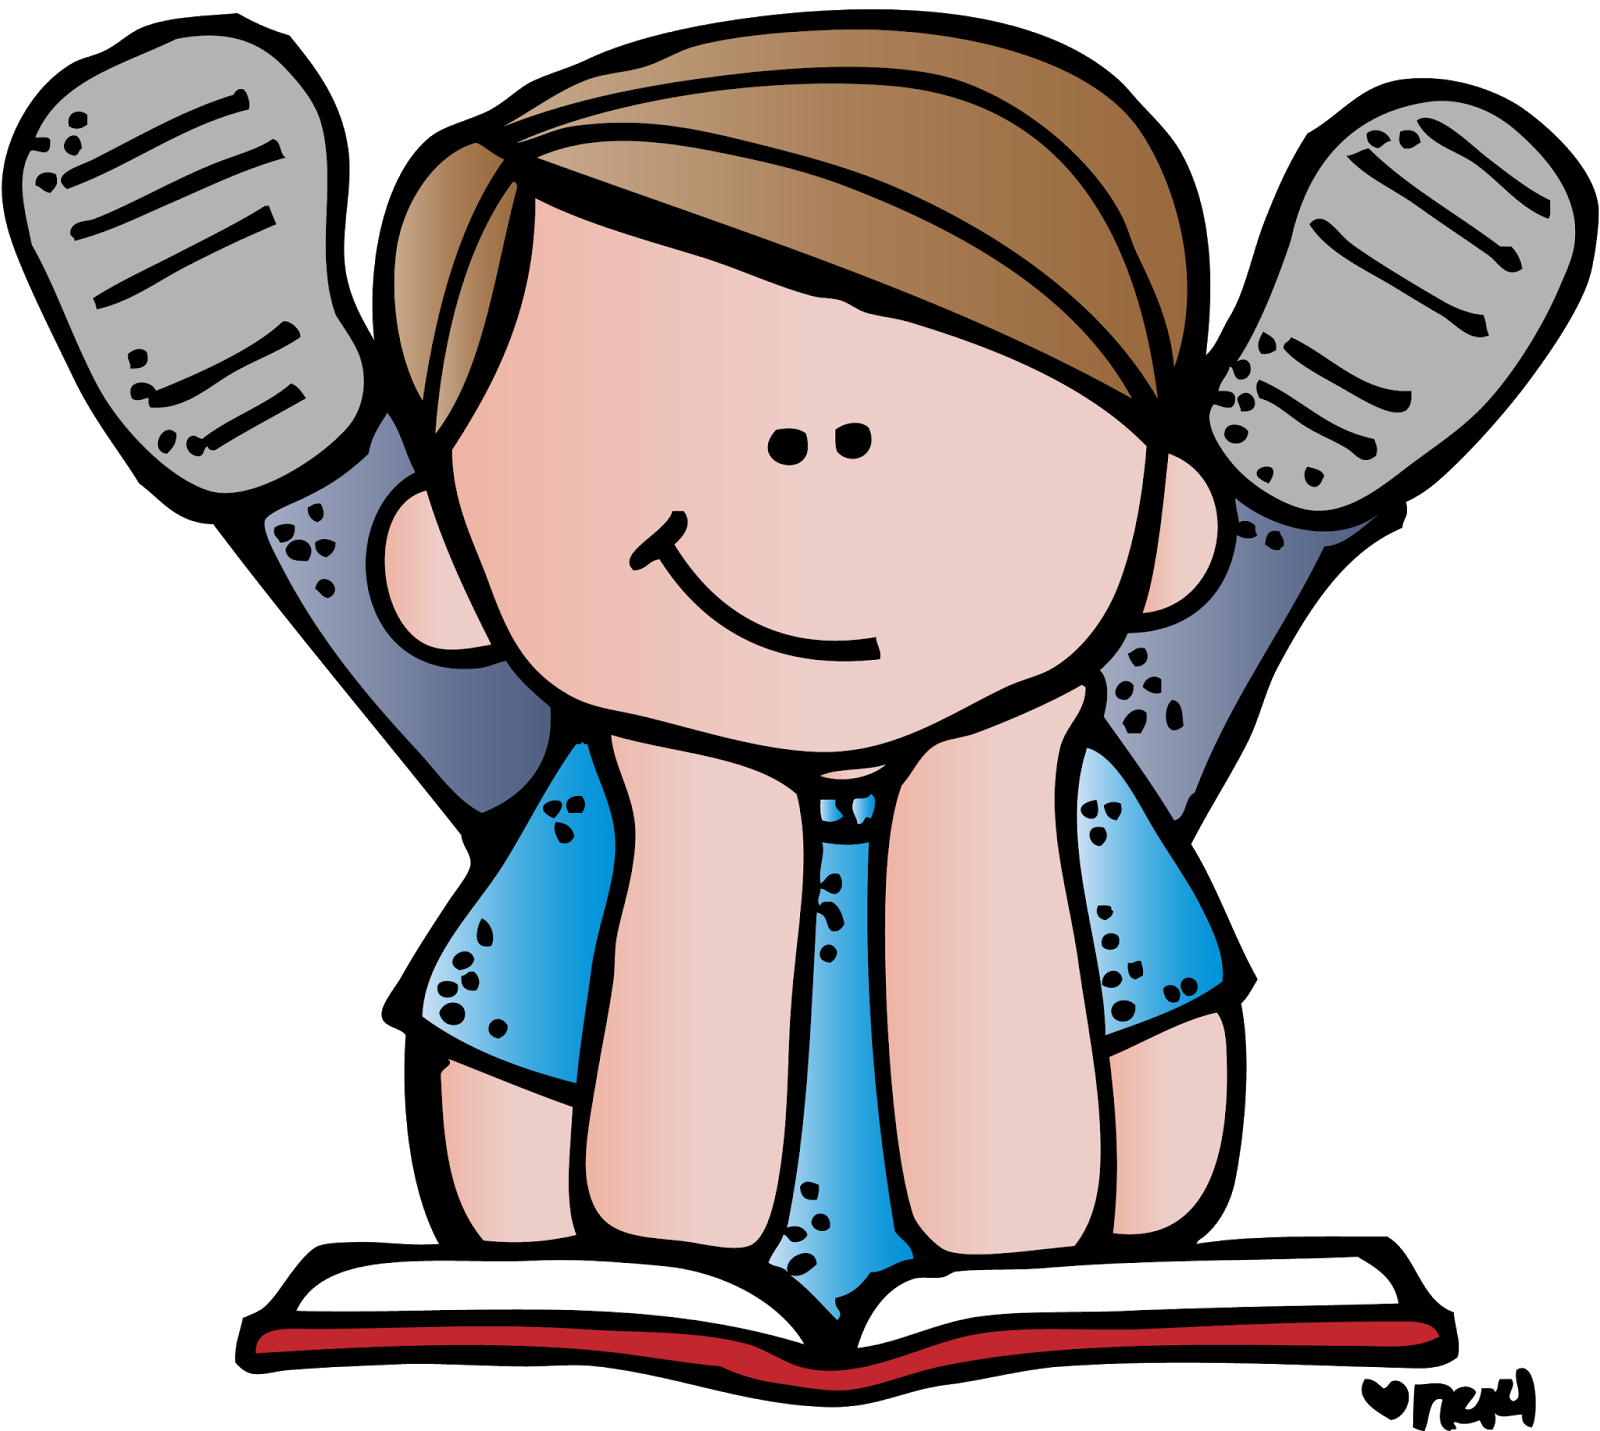 Girl holding reading book clipart vector freeuse stock Kids Reading Clipart at GetDrawings.com | Free for personal use Kids ... vector freeuse stock